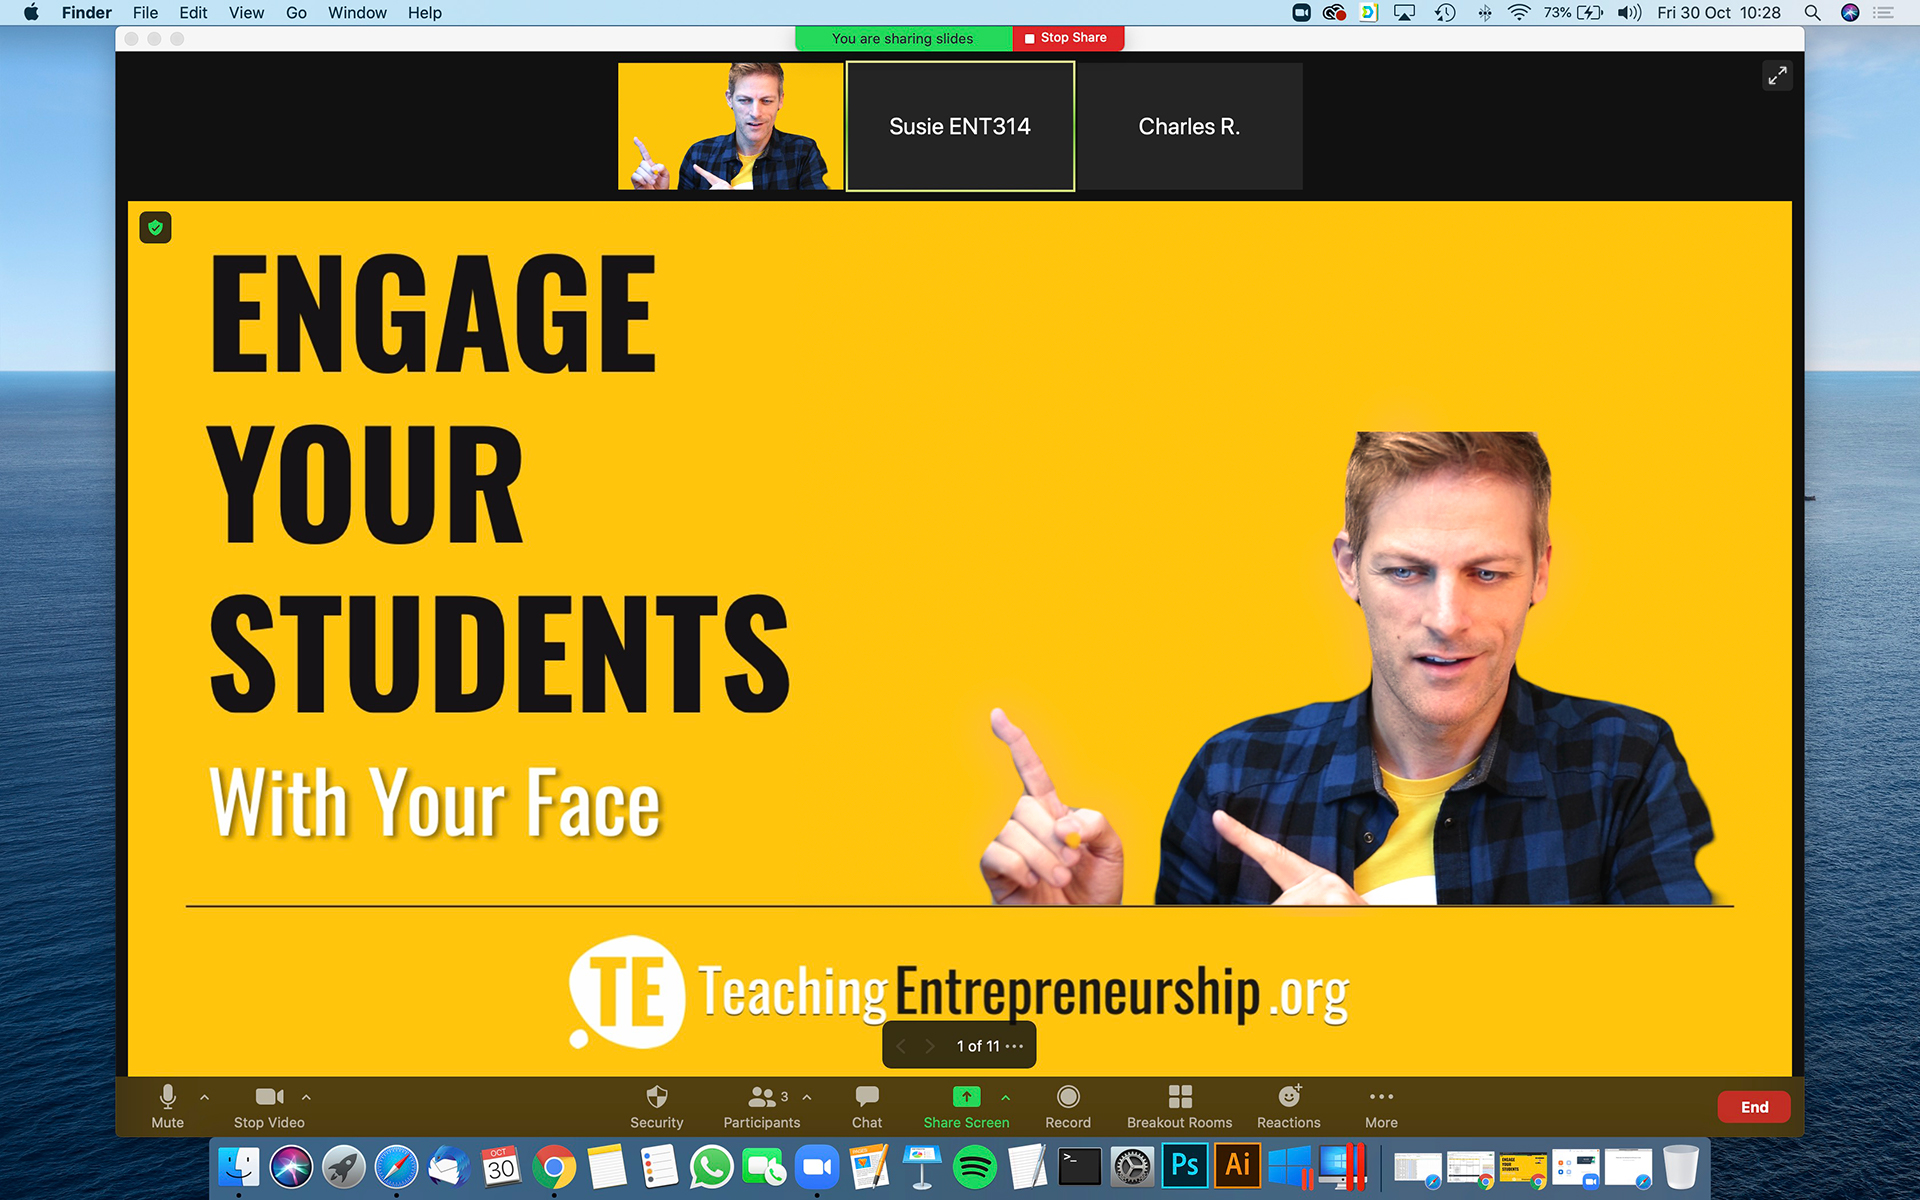 Combine slides and camera to engage entrepreneurship students